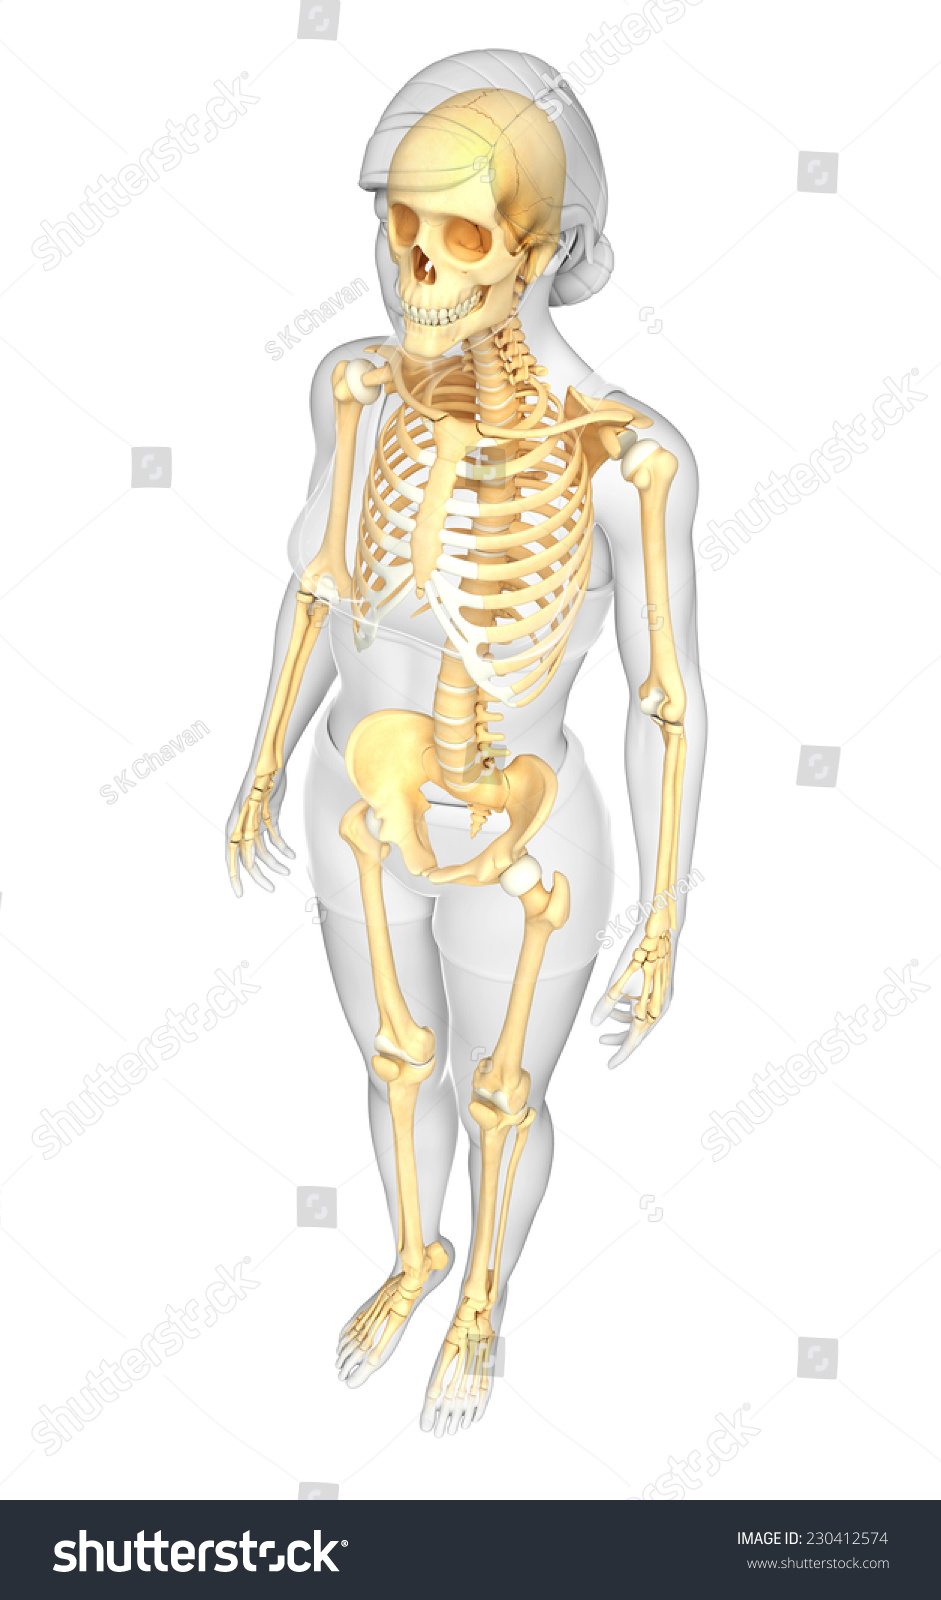 Royalty Free Stock Illustration Of Illustration Human Skeleton Side